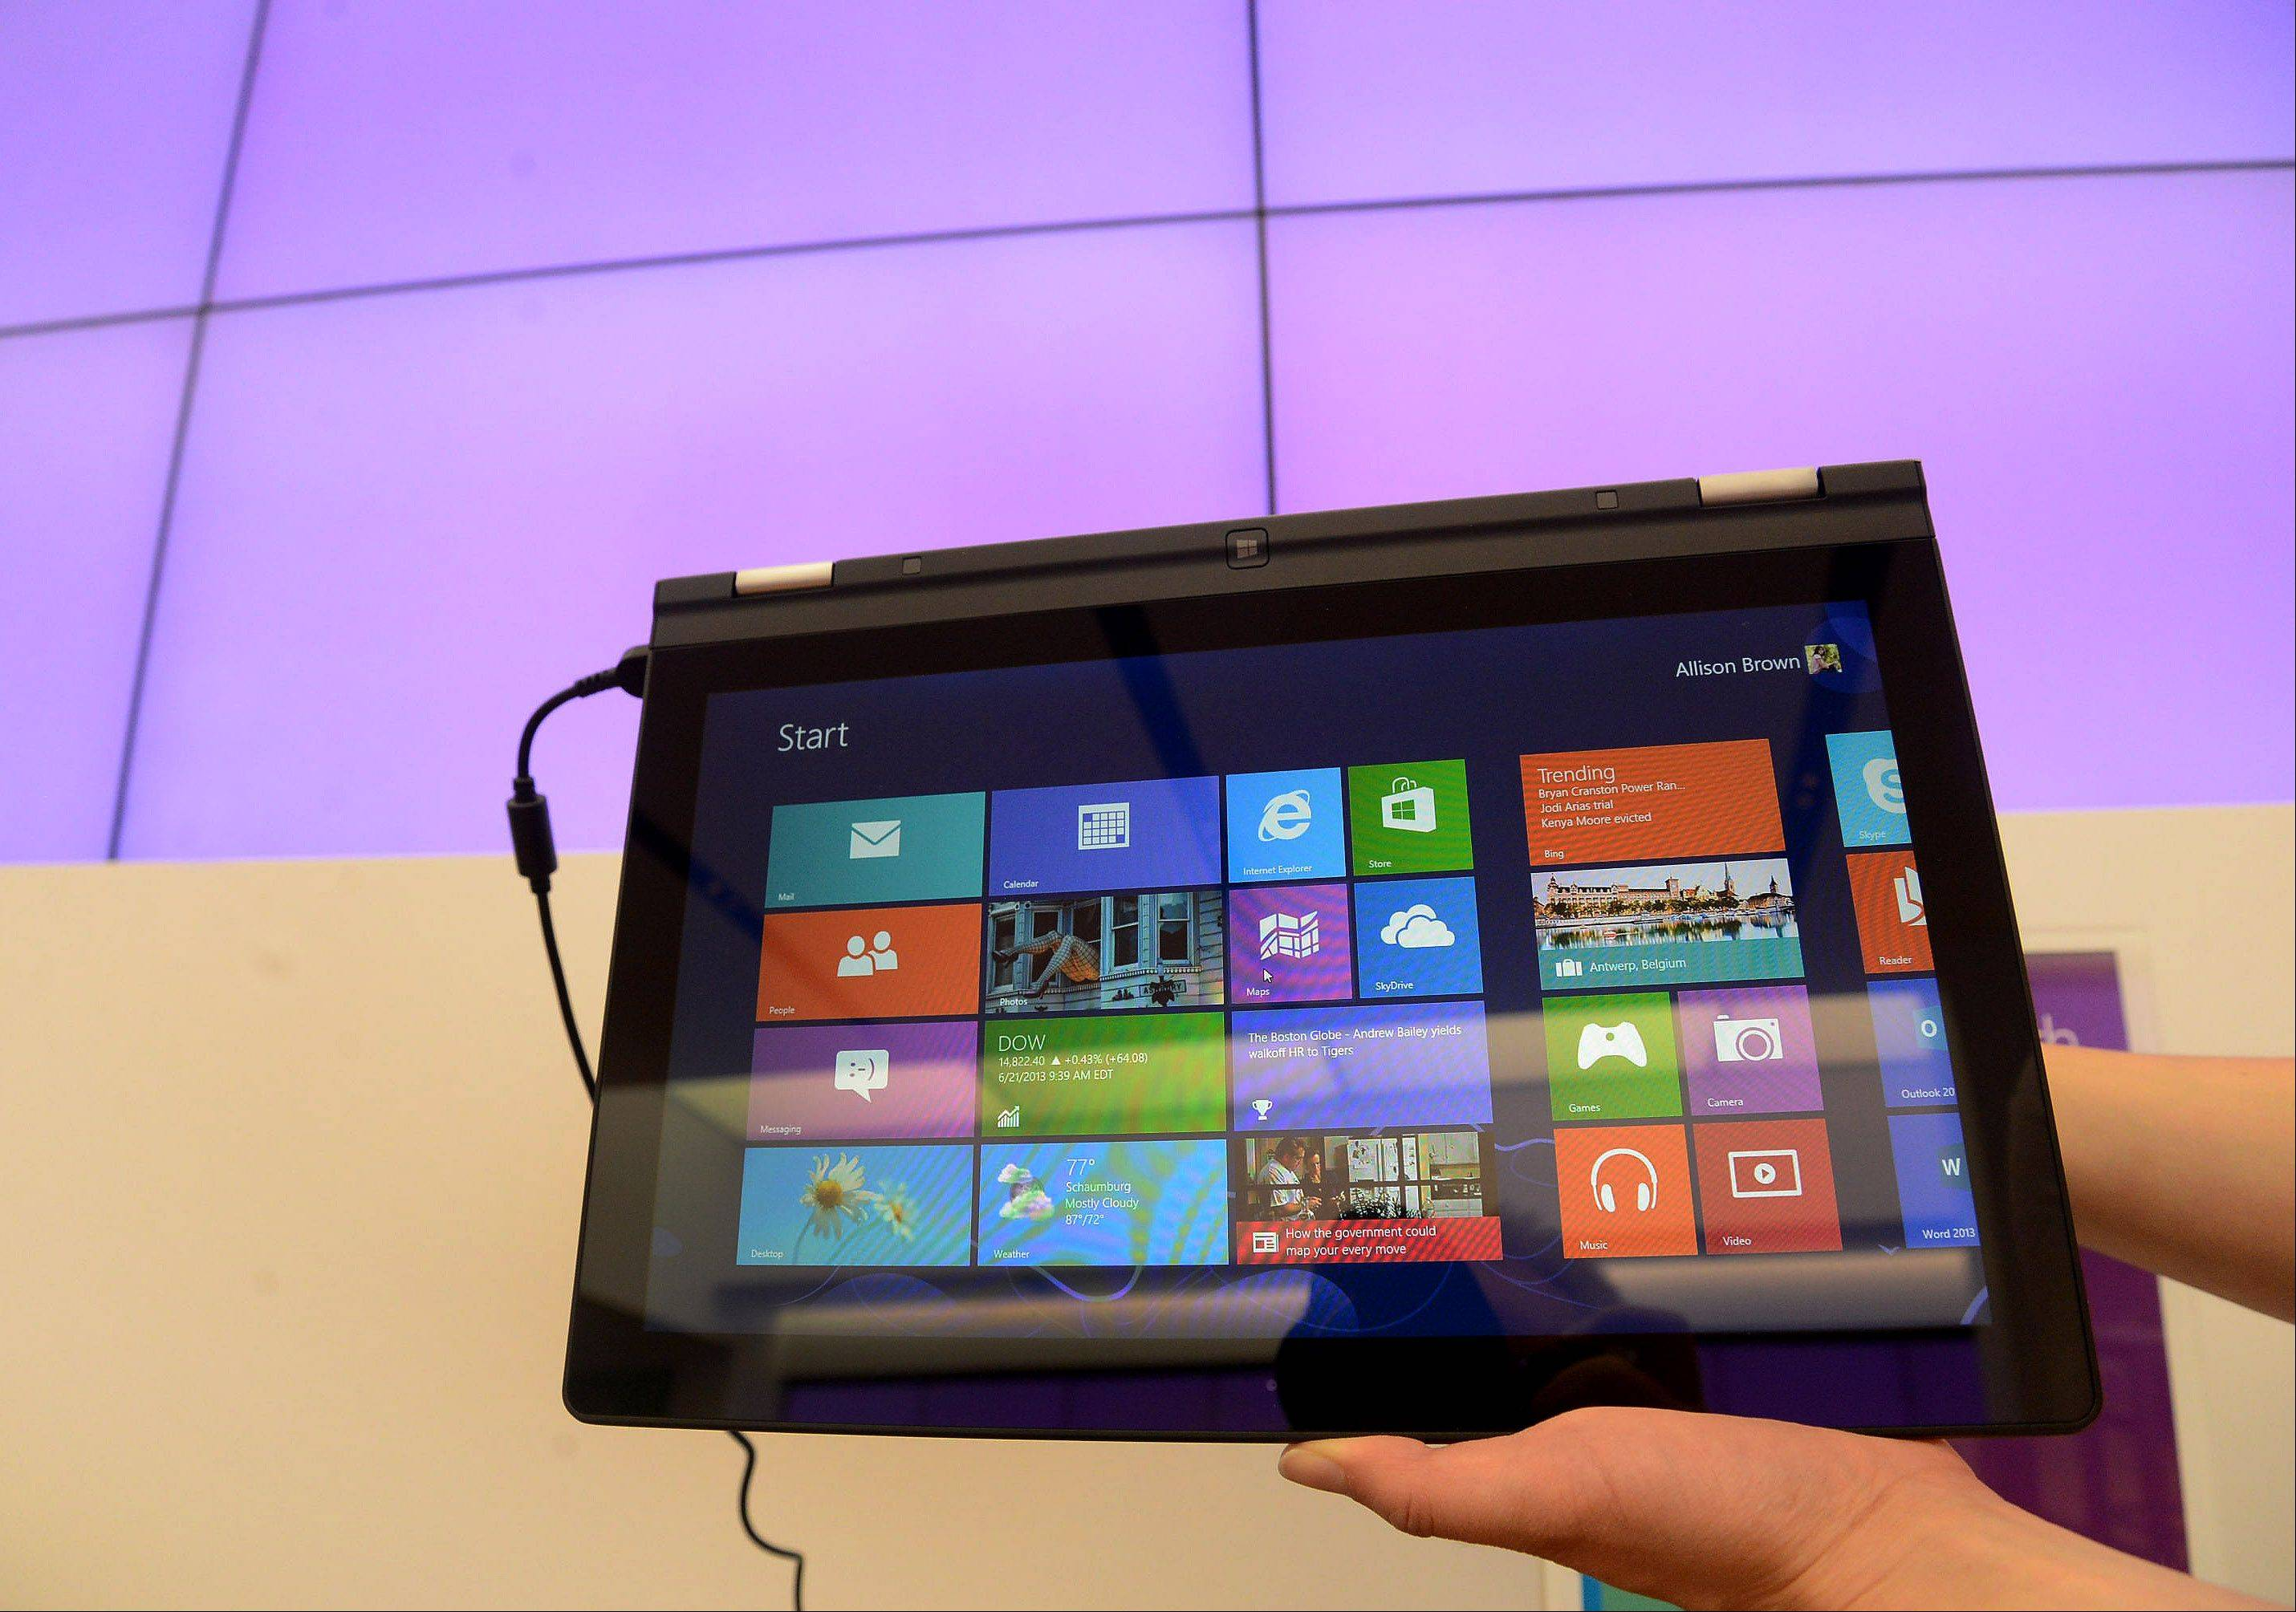 Lacretia Taylor, public relations assistant, displays the Lenovo IdeaPad Yoga i5 with Windows 8 operating system. Lenovo said it will buy Motorola Mobility.